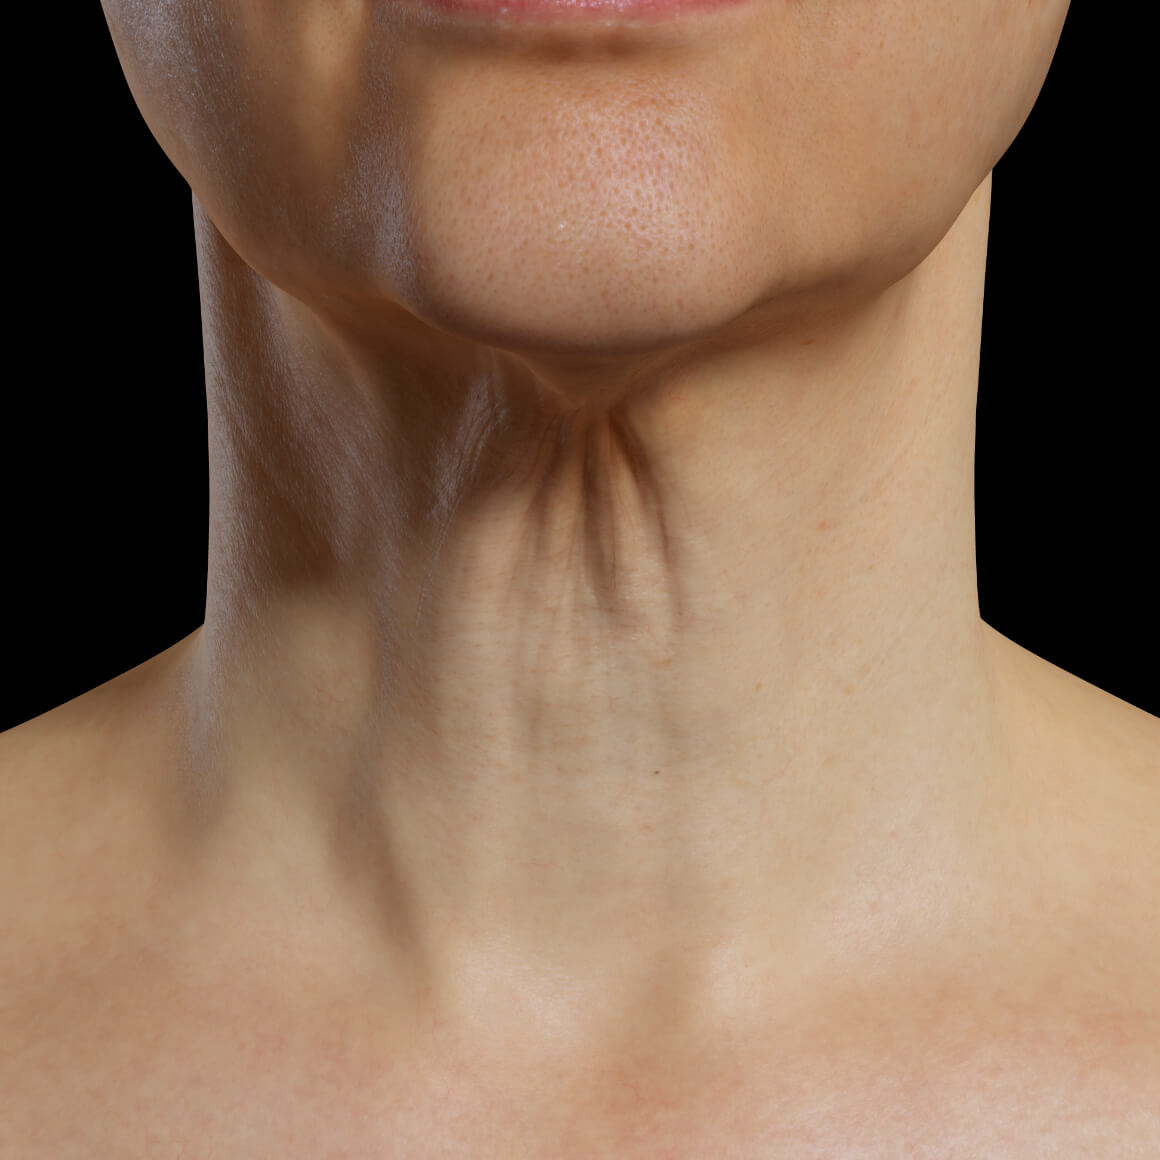 A female patient at Clinique Chloé facing front showing skin laxity in the neck area